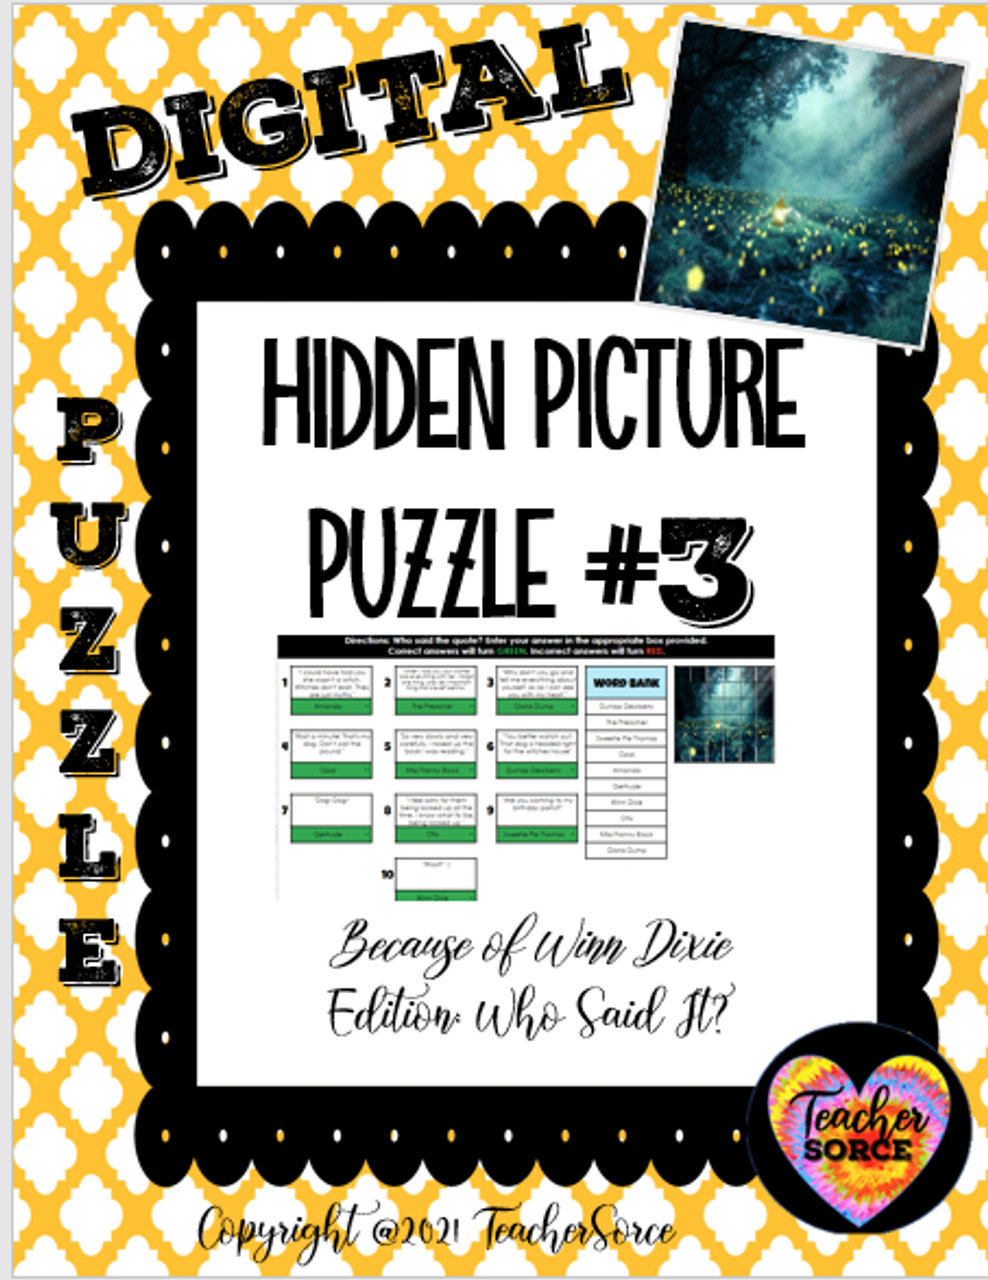 Hidden Mystery Picture Puzzles: Because of Winn Dixie Edition Who Said It Quotes